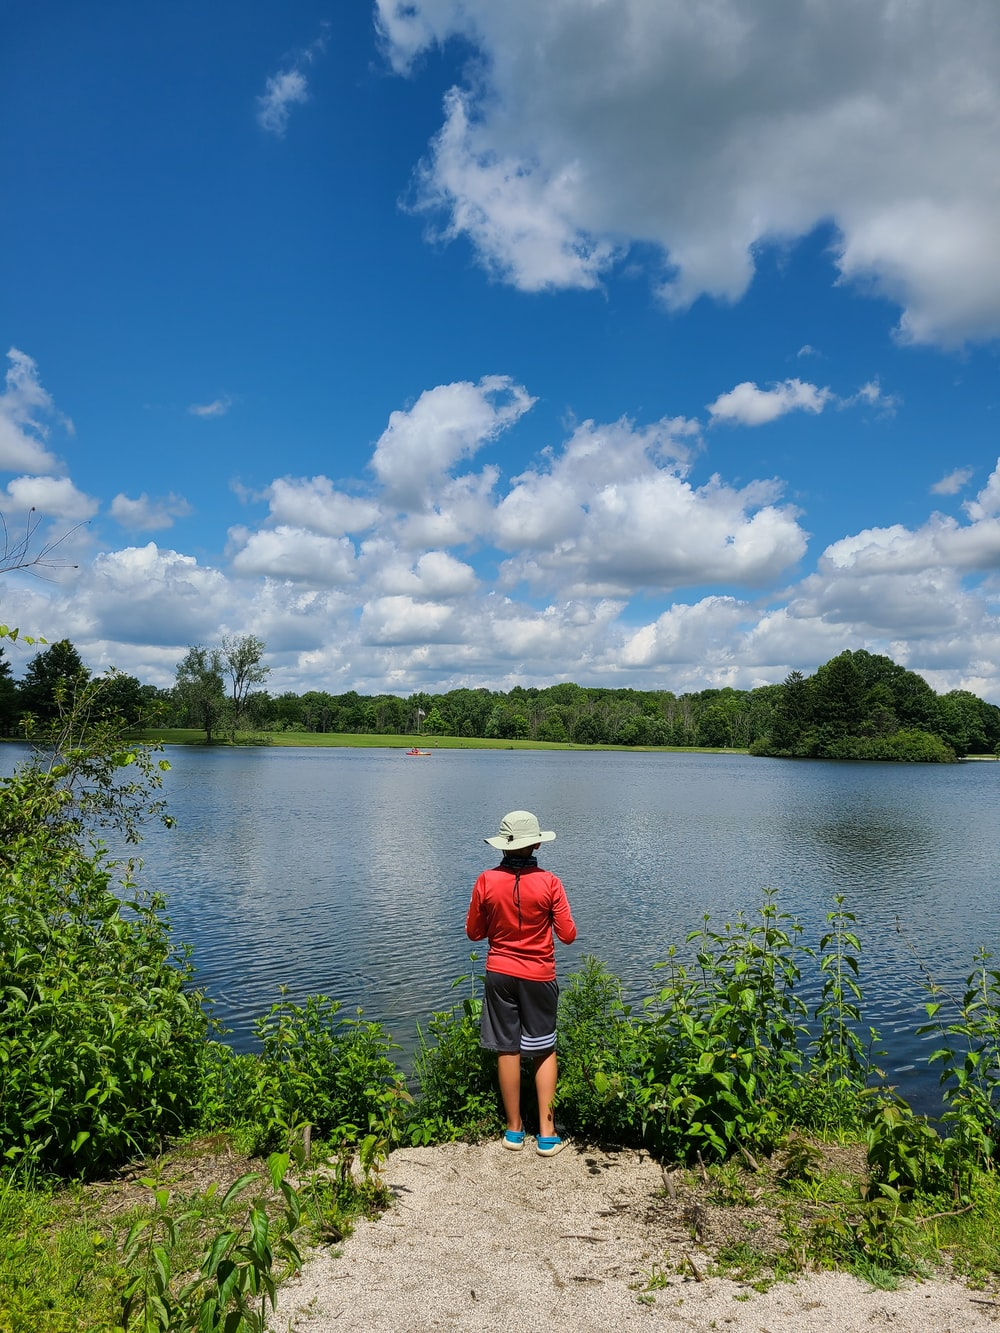 person in red shirt standing near lake during daytime